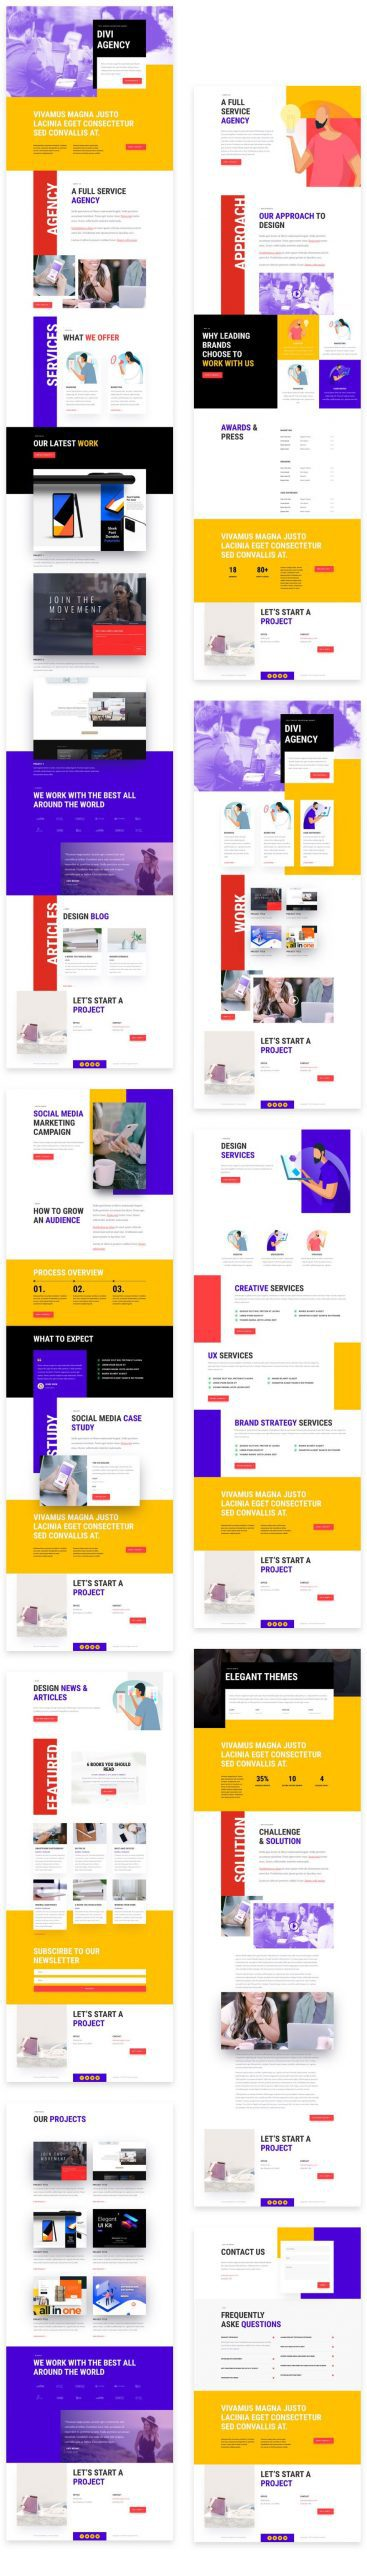 Advertising Agency Divi Layout Pack